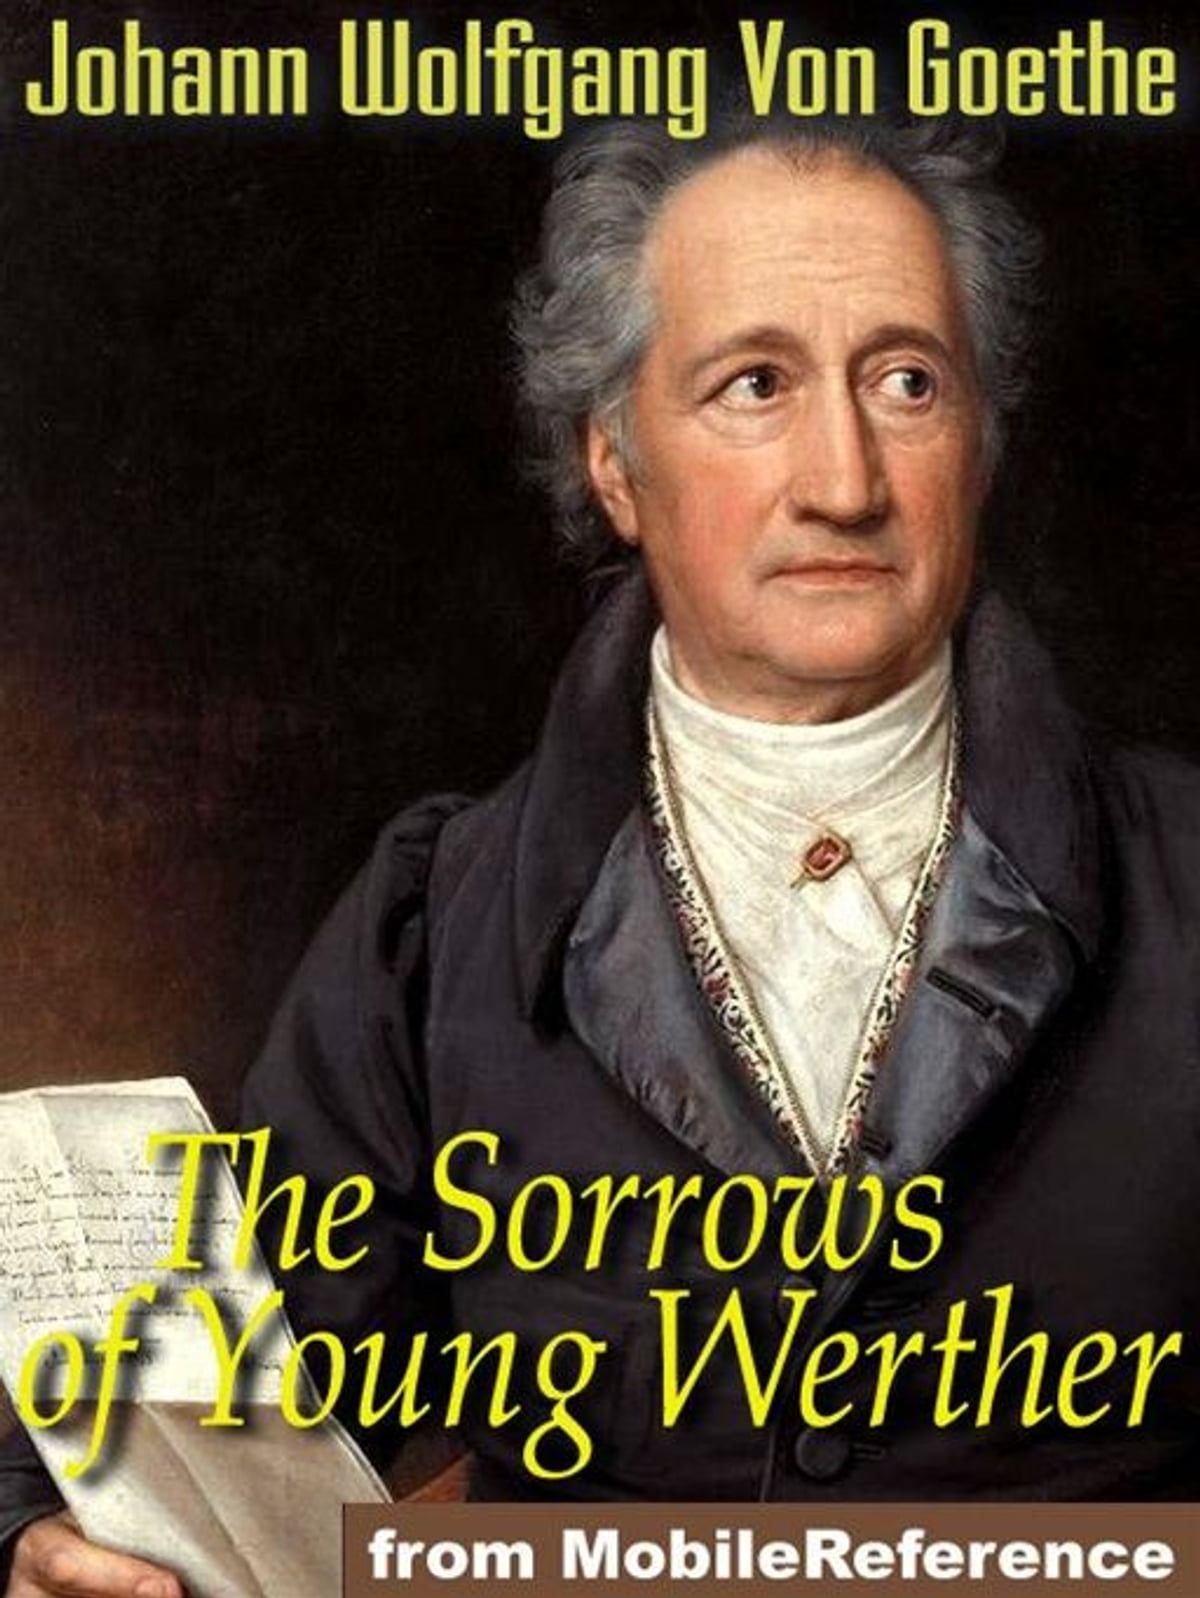 the immature behavior of werther in the sorrows of young werther an epistolary loosely autobiographi